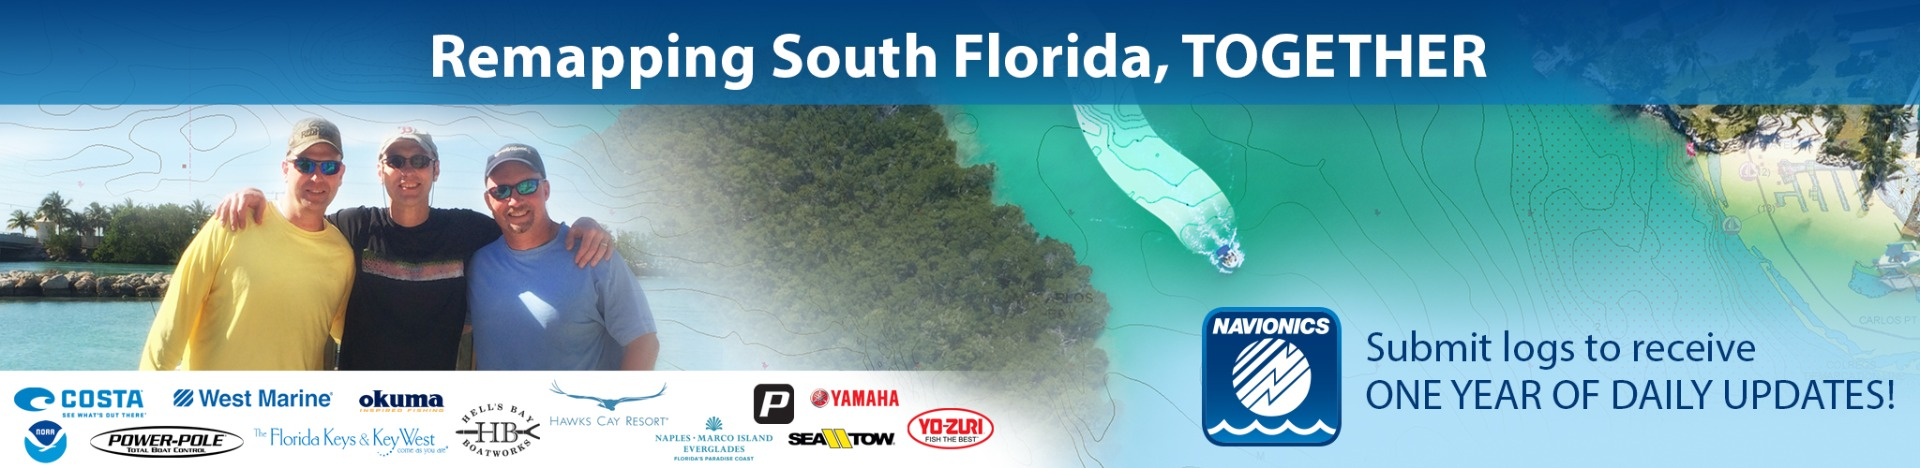 Remapping South Florida